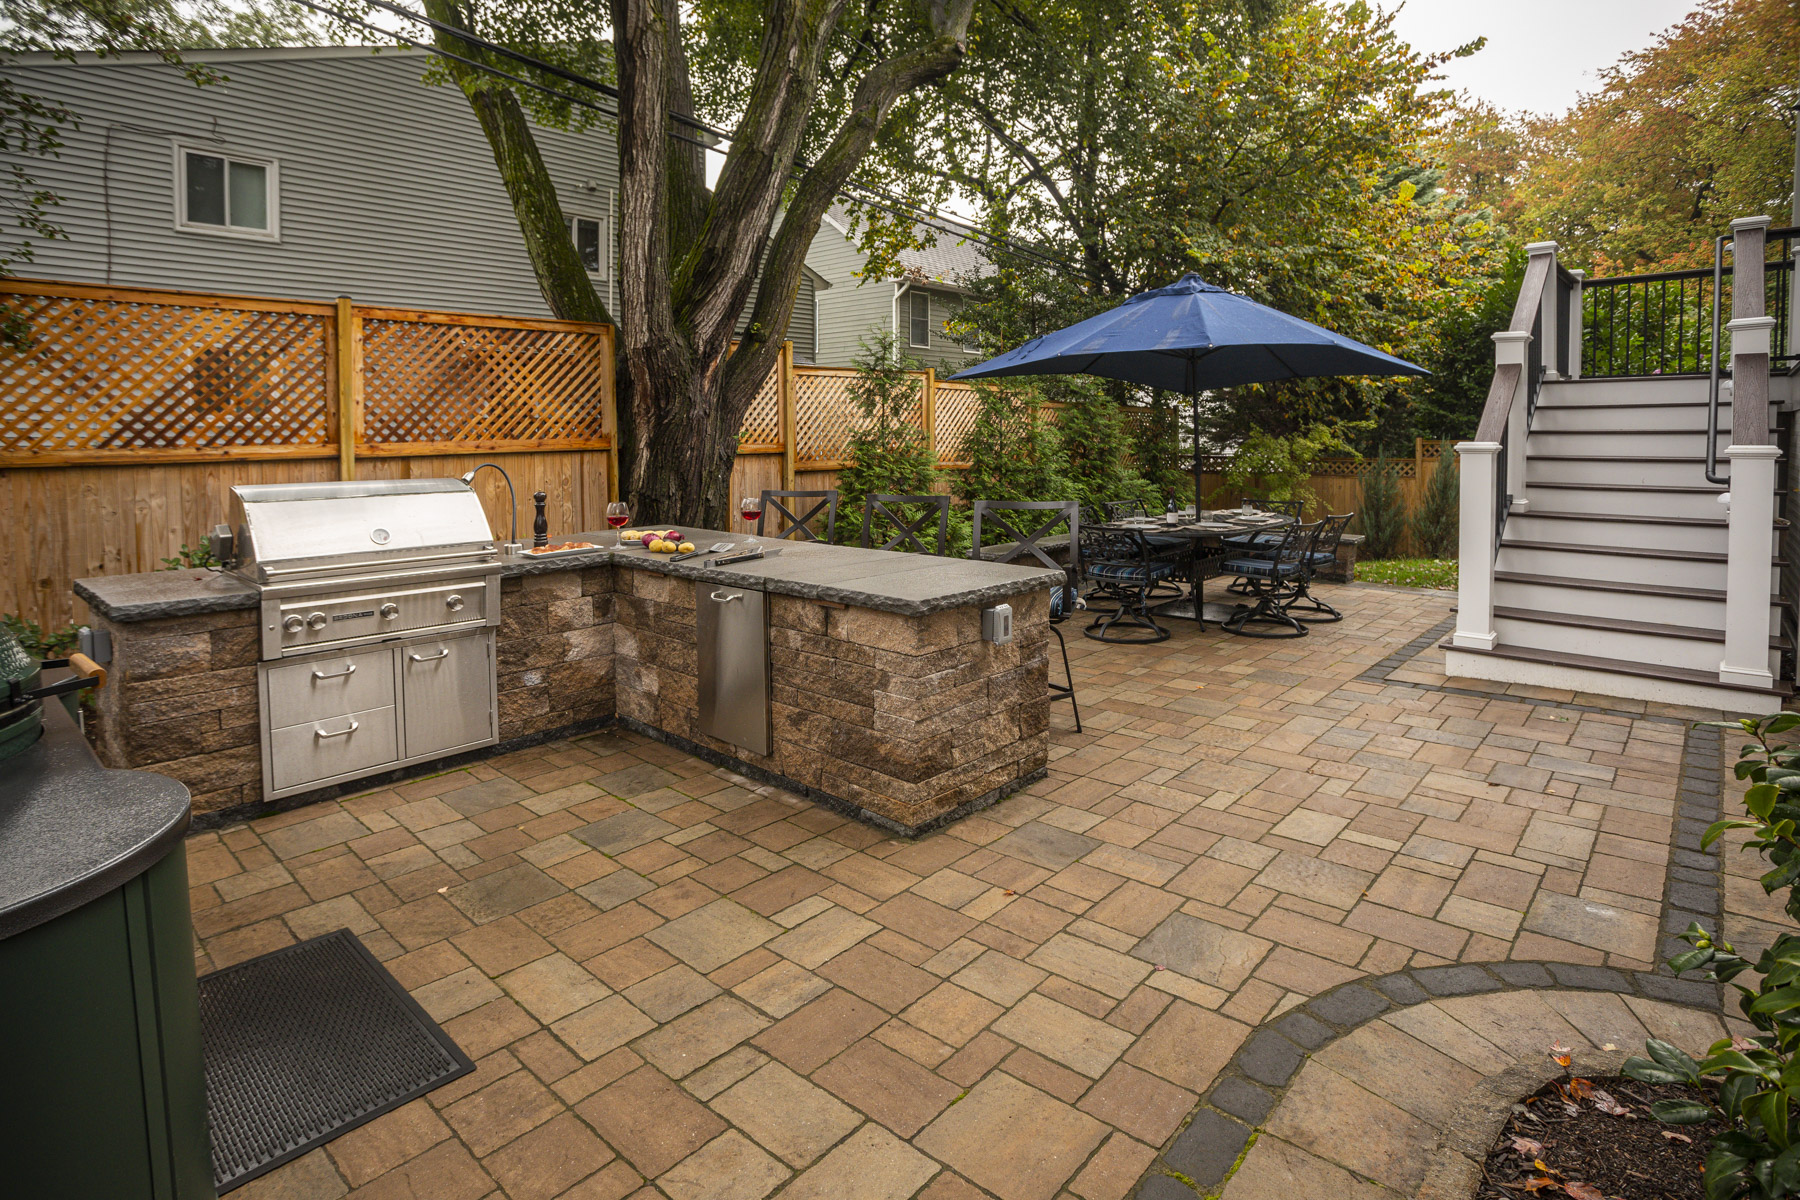 Paver patio and outdoor kitchen installation